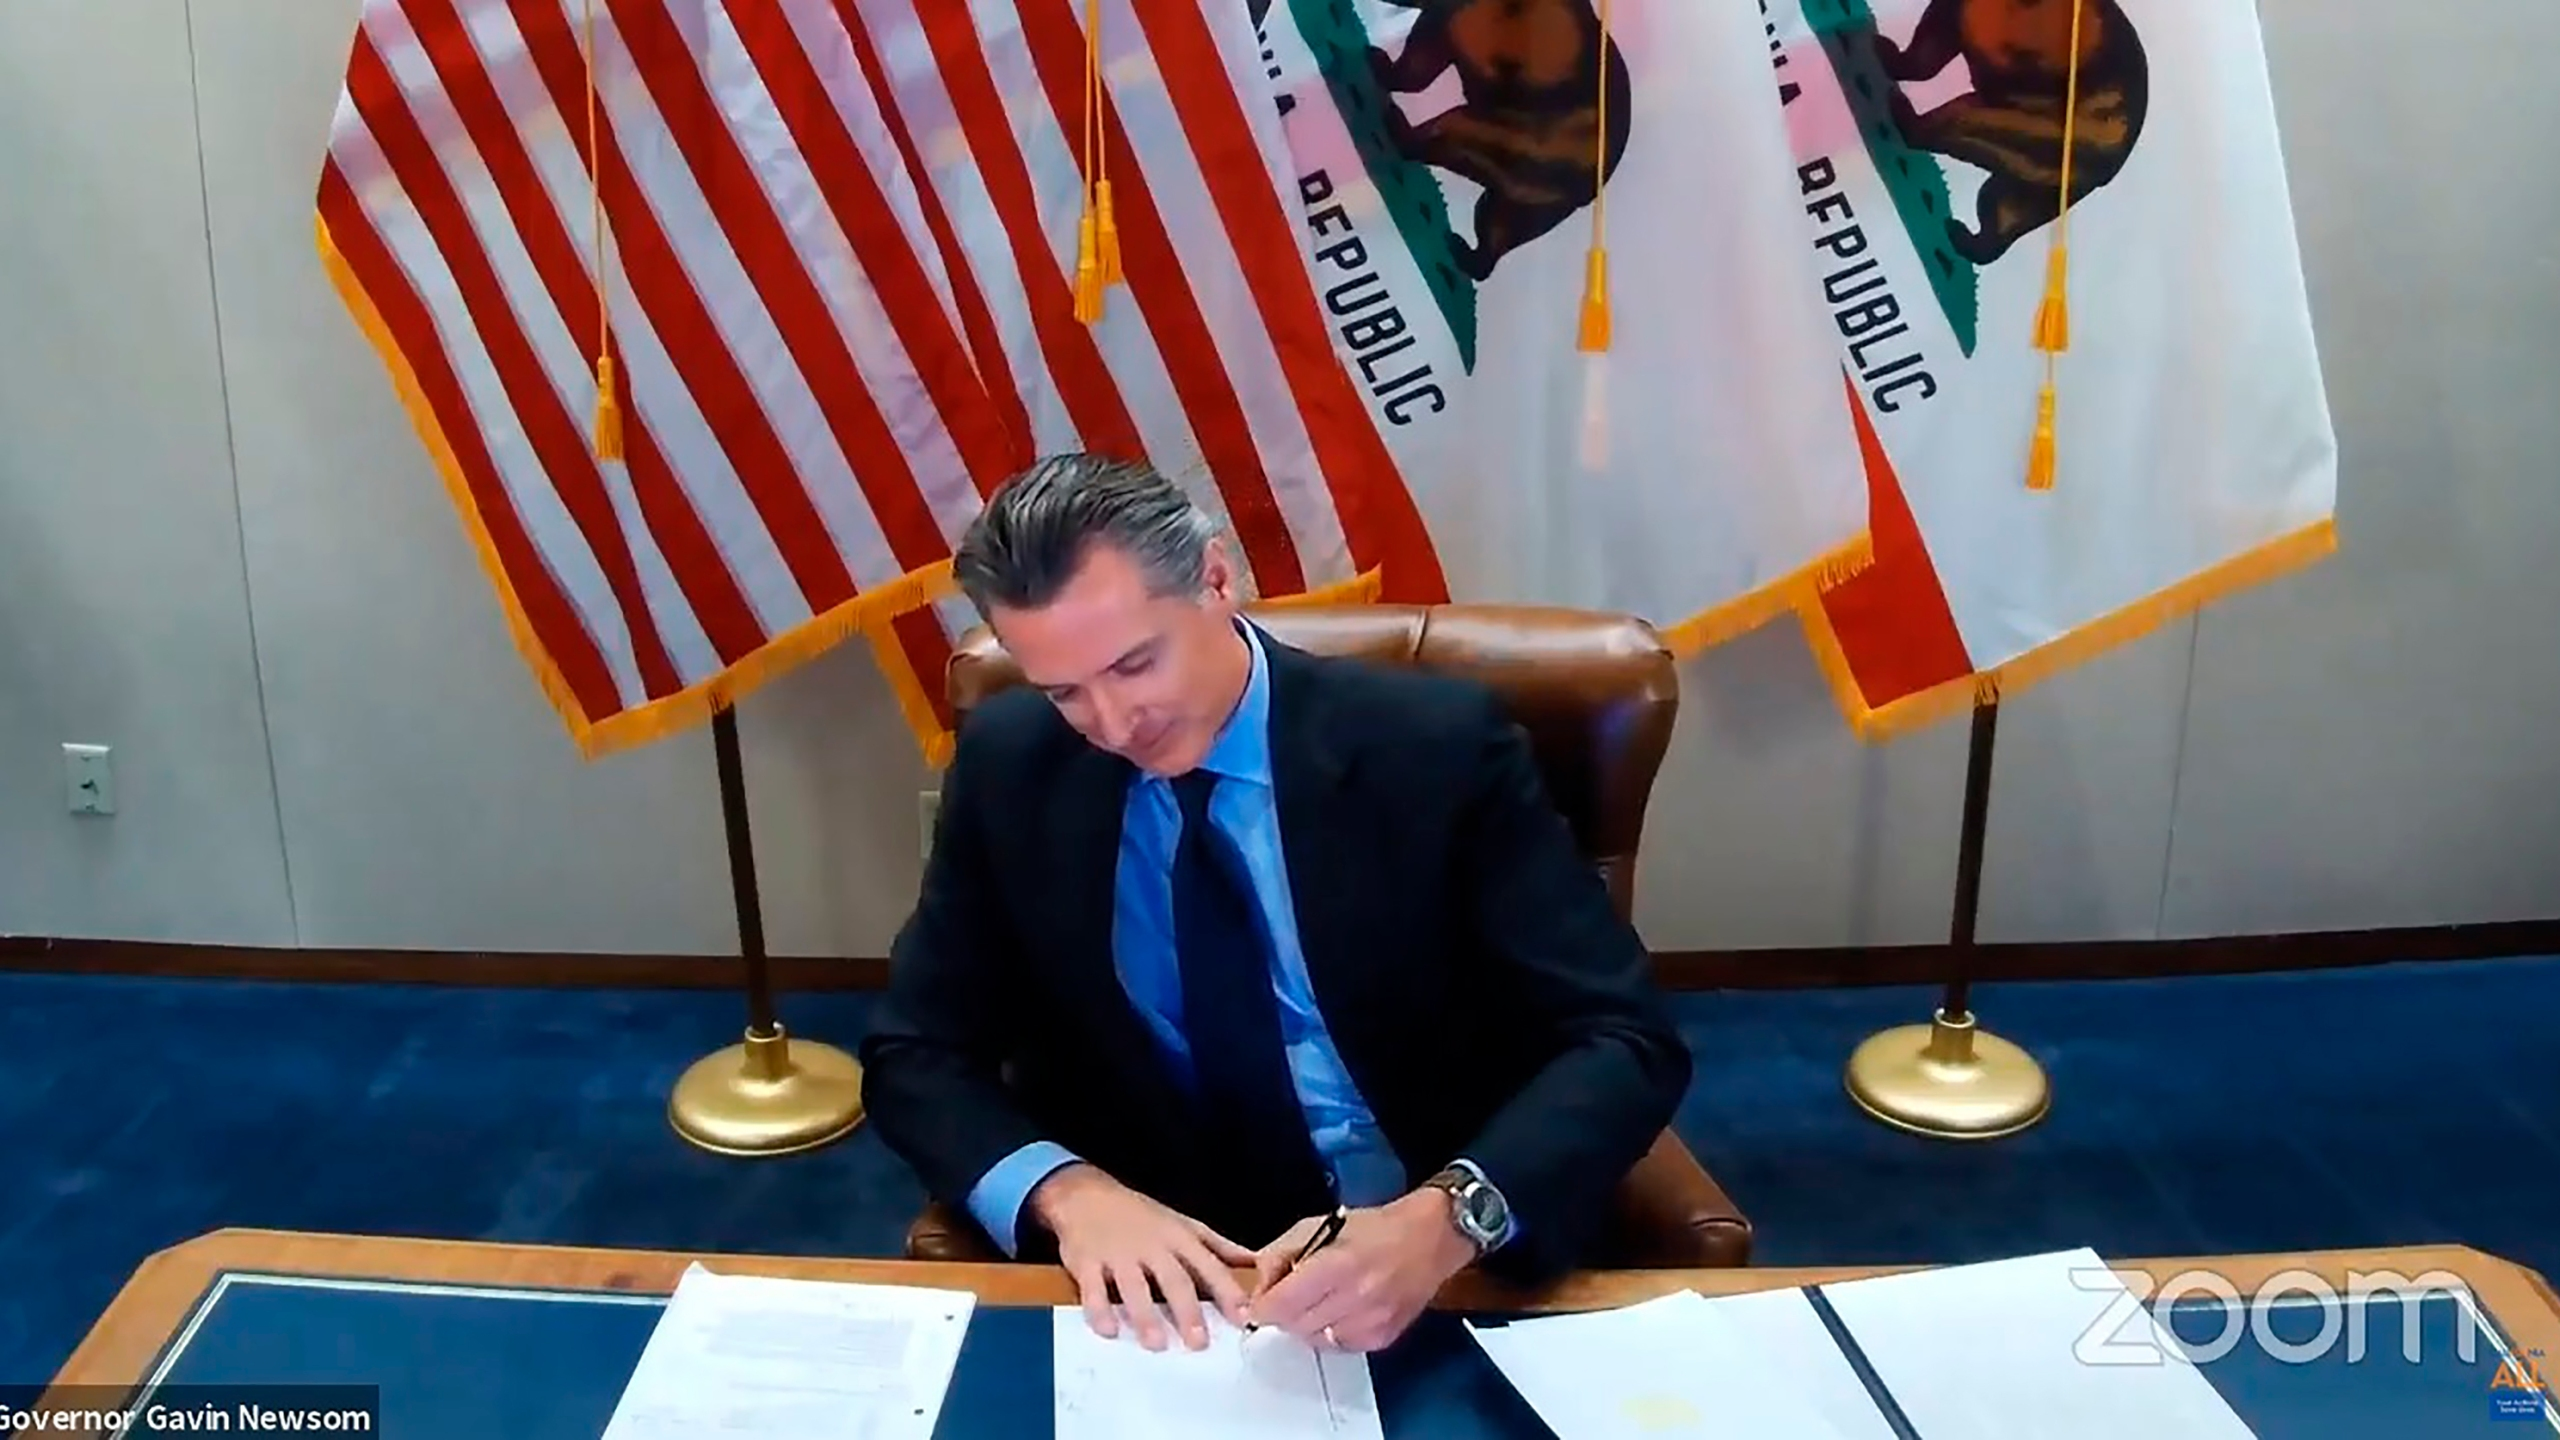 This image made from video from the Office of the Governor shows California Gov. Gavin Newsom signing into law a bill that establishes a task force to come up with recommendations on how to give reparations to Black Americans on Wednesday, Sept. 30, 2020, in Sacramento, Calif. The law establishes a nine-member task force to come up with a plan for how the state could give reparations to Black Americans, what form those reparations might take and who would be eligible to receive them. (Office of the Governor via AP)